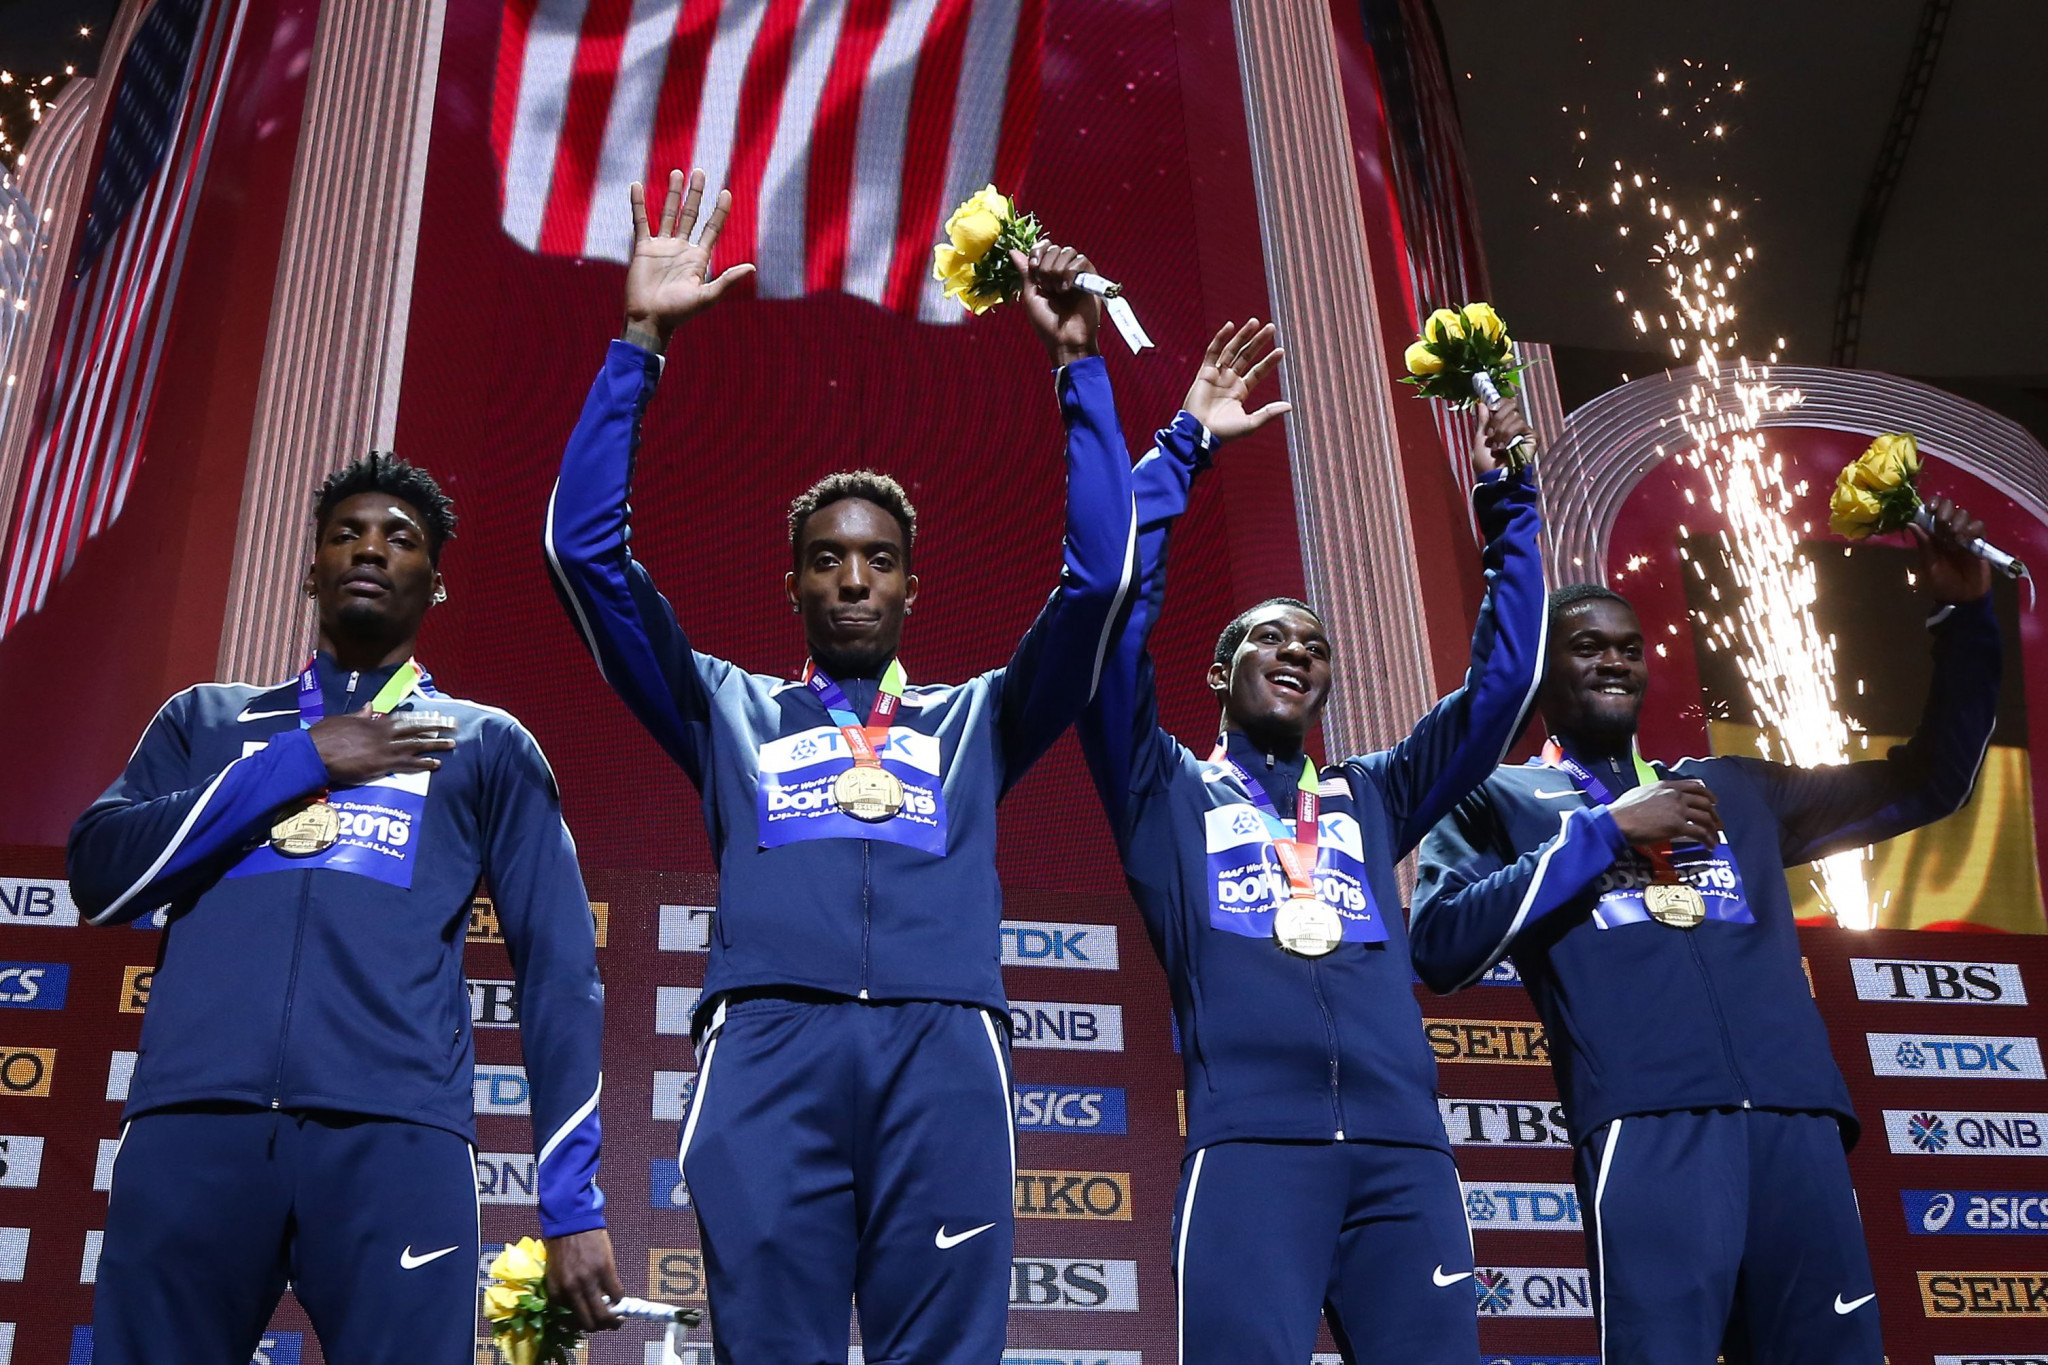 US top medal table at IAAF World Championships in Doha as Mihambo takes flight in long jump